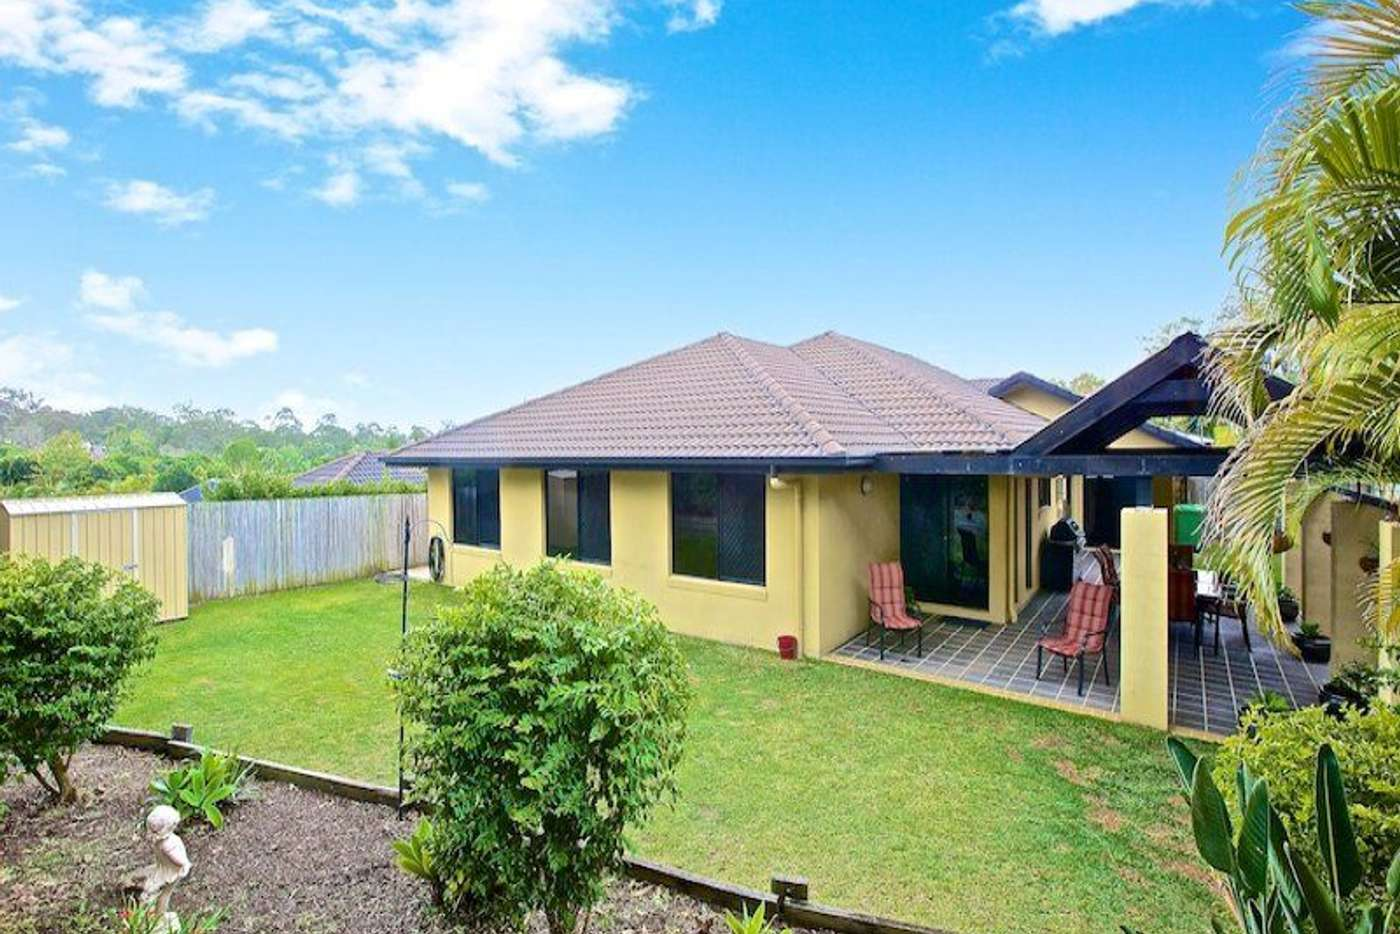 Main view of Homely house listing, 35 Ormeau Ridge Road, Ormeau Hills QLD 4208